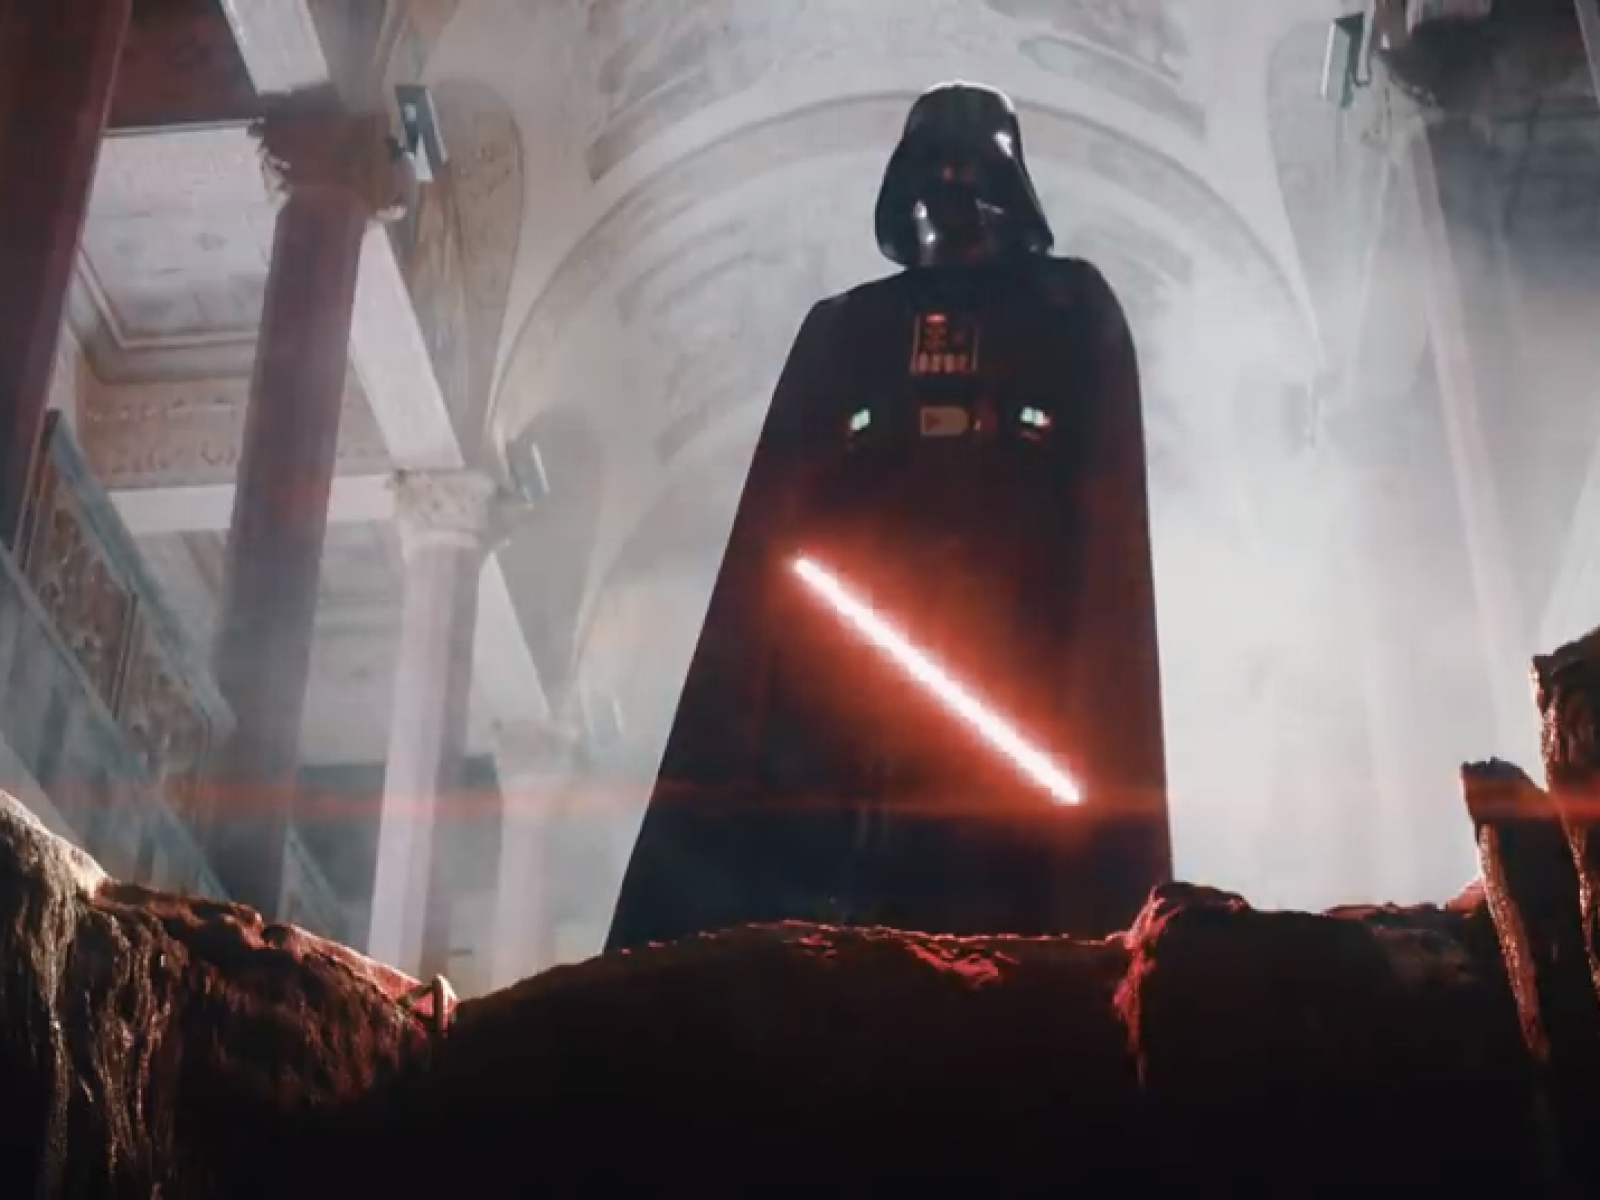 Youtube Star Wars Theory Has Vader Fan Film Struck Down By Disney Music Publisher Update